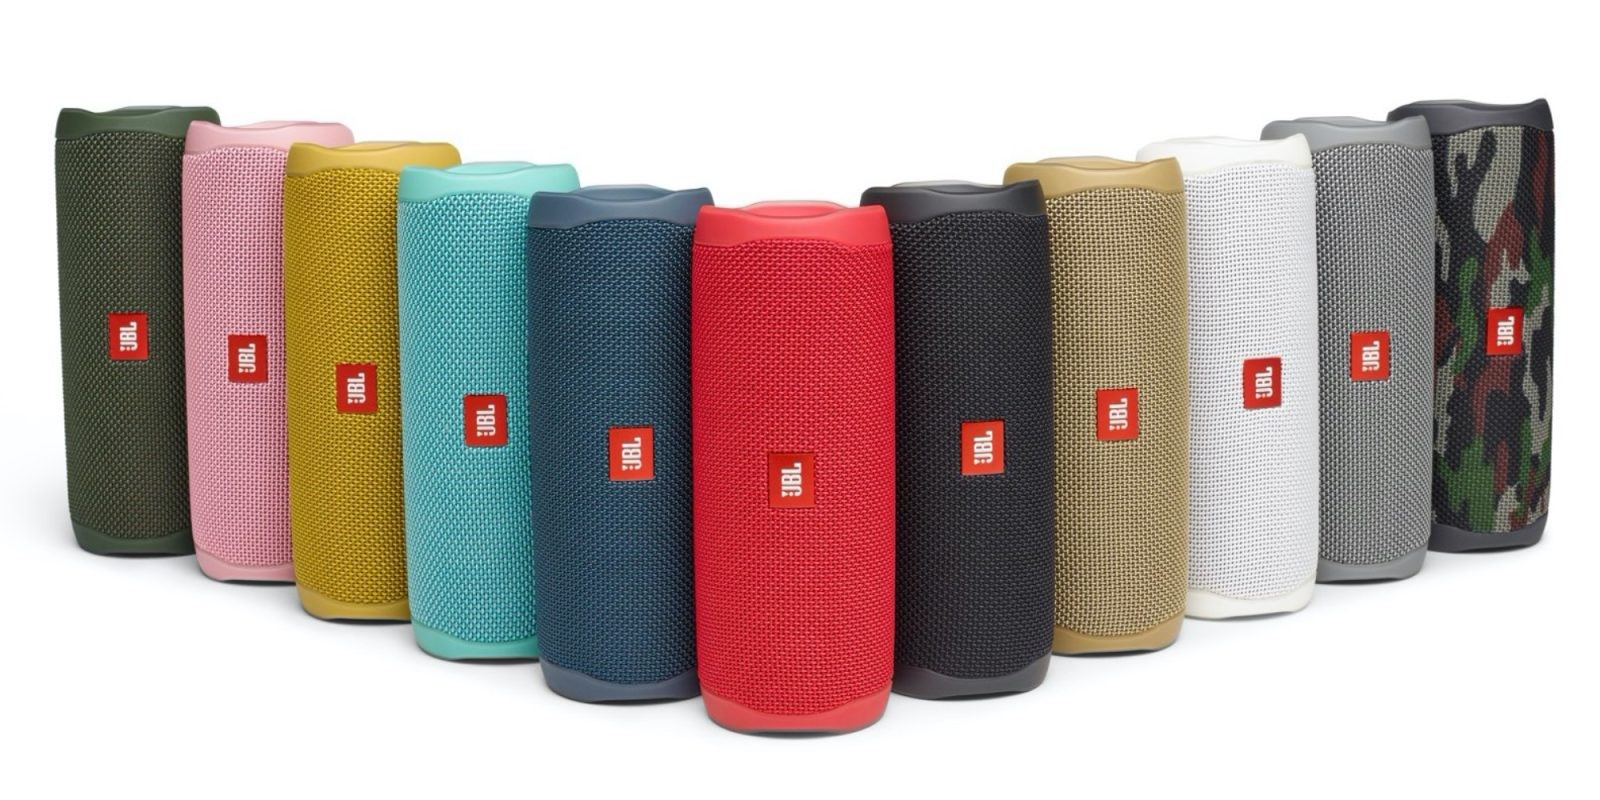 Description: JBL's Flip 5 Bluetooth Speaker comes in a variety of colors at $90 ...